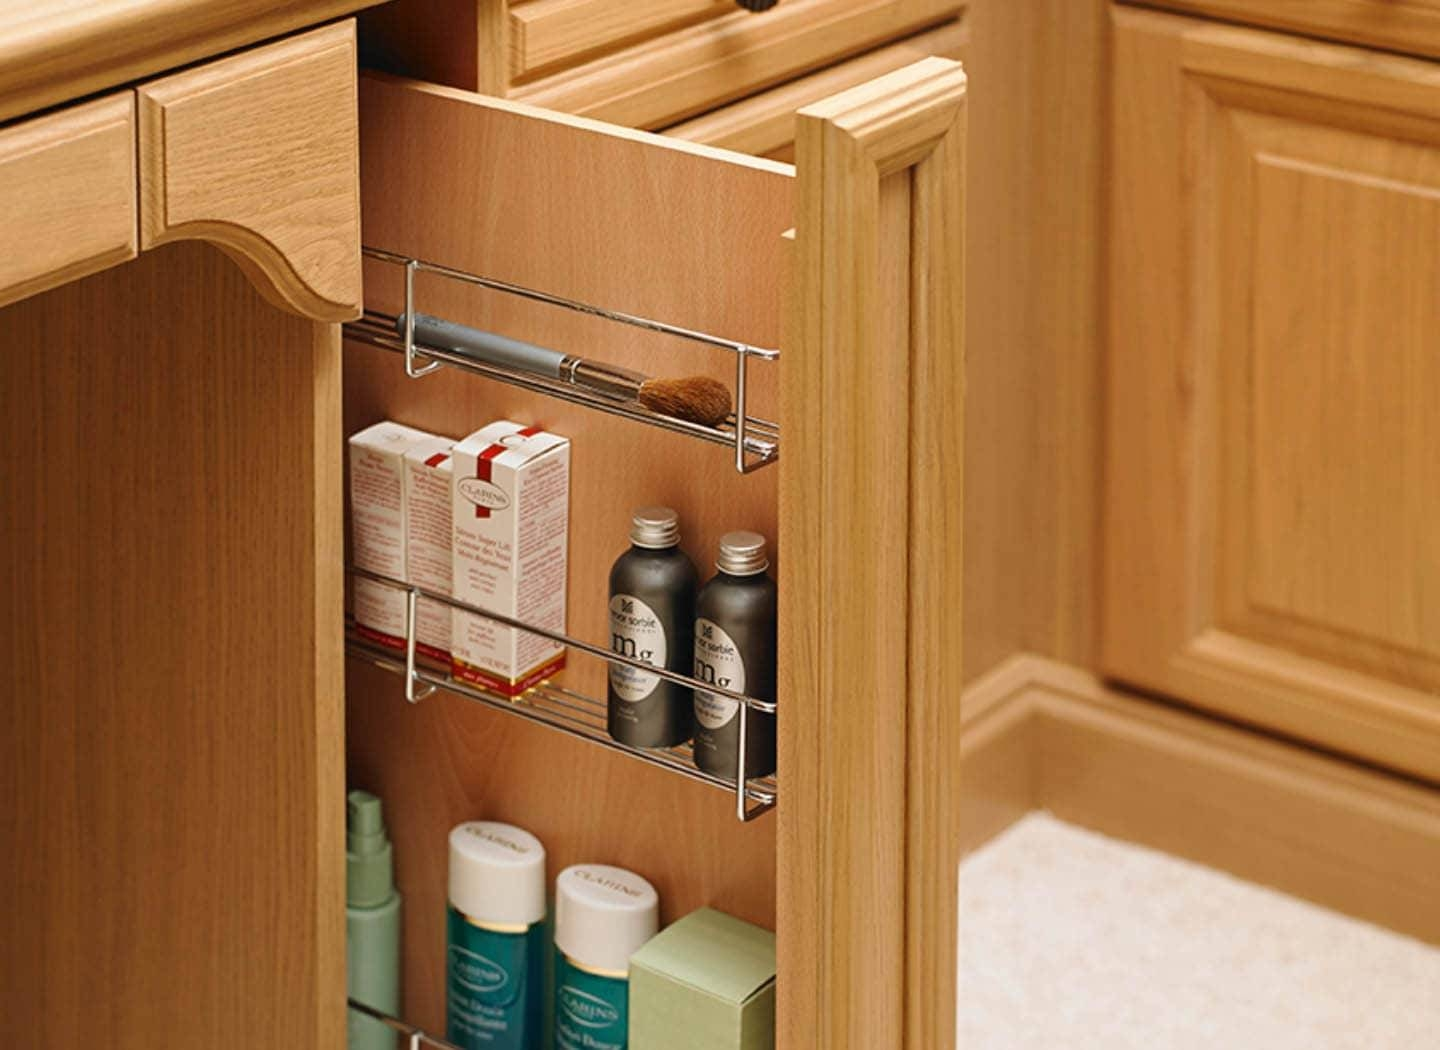 Luxury Fitted Bedroom Furniture & Wardrobesstrachan regarding Wardrobes and Dressing Tables (Image 9 of 15)